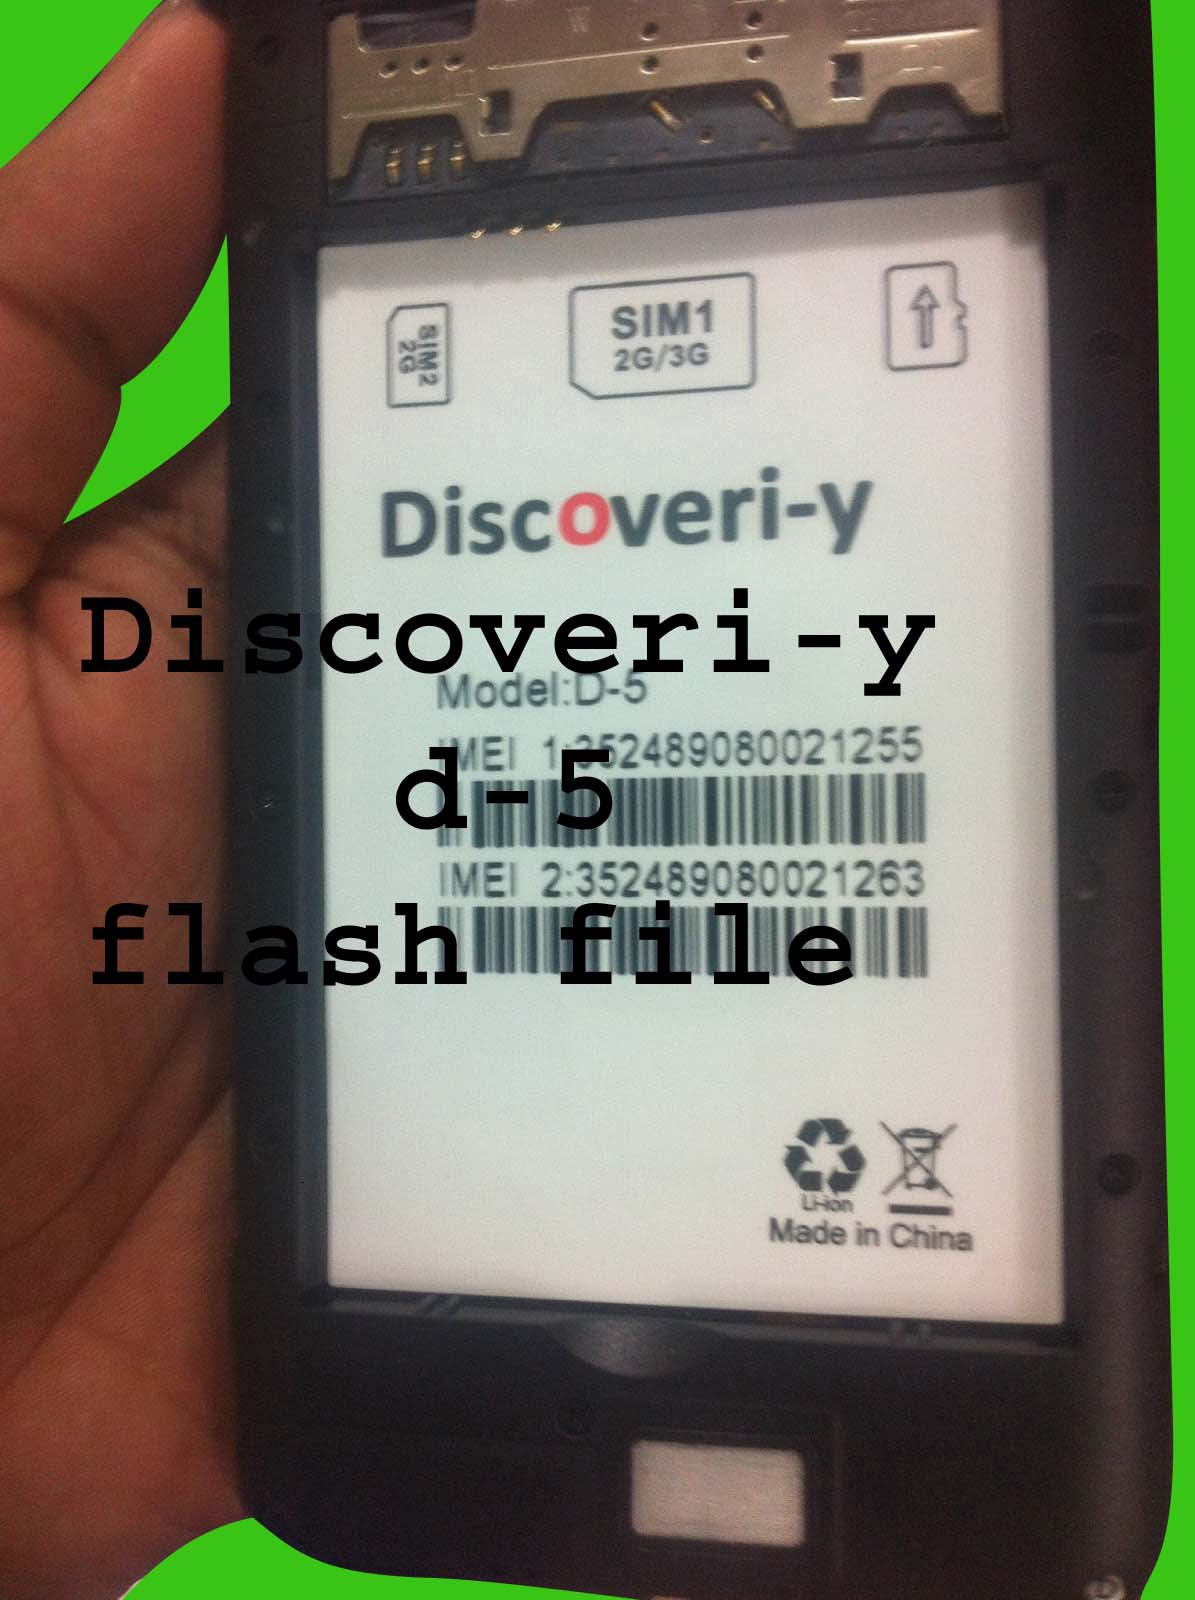 D Flash File Without - Psnworld